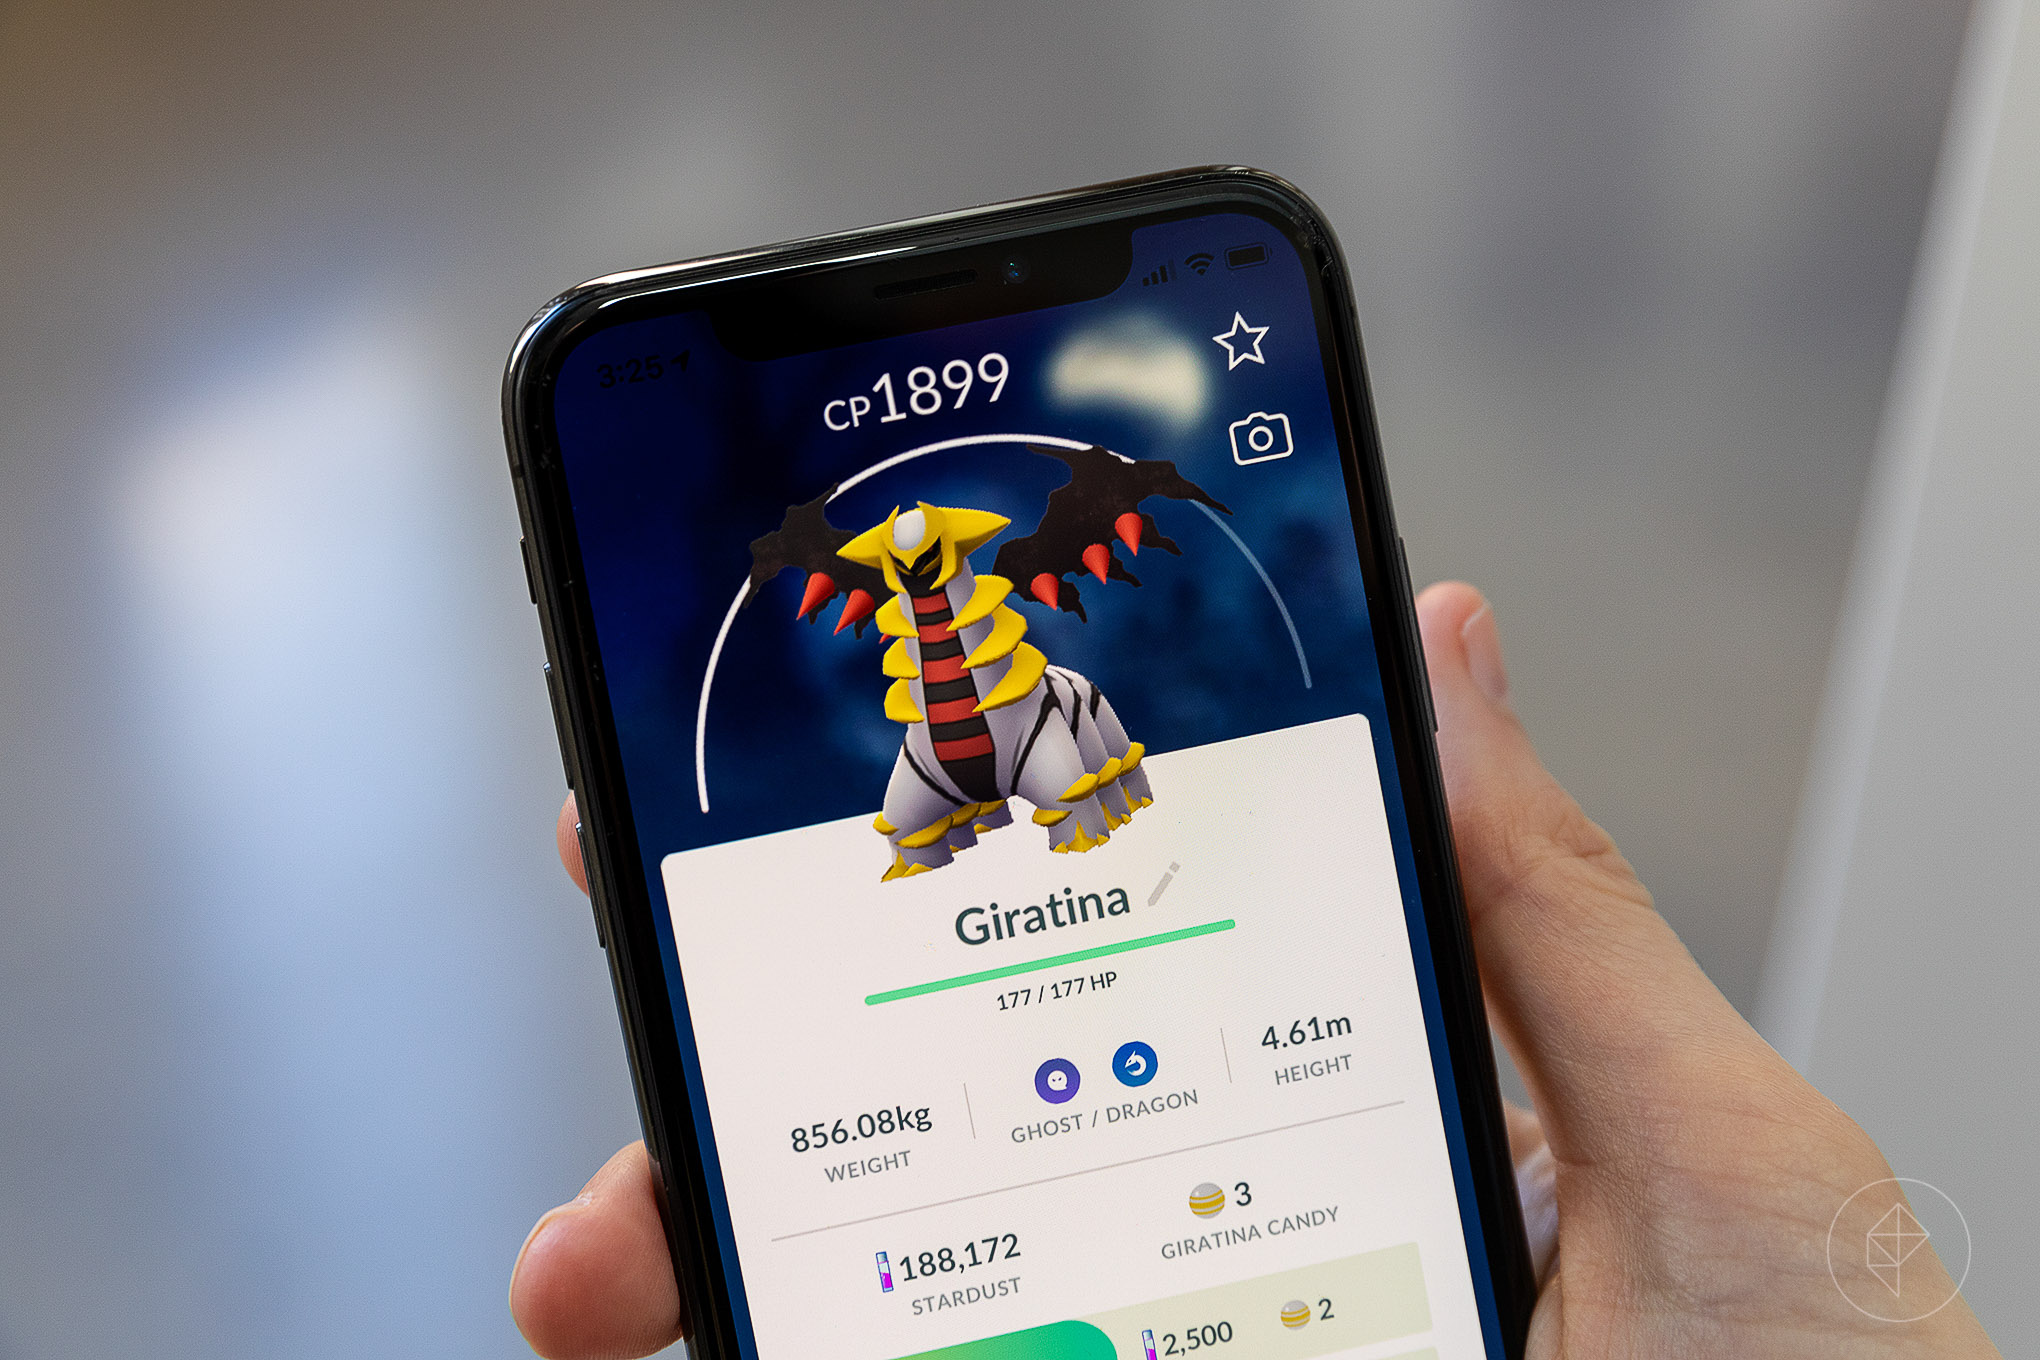 Pokémon Go Giratina raid guide: counters and best movesets